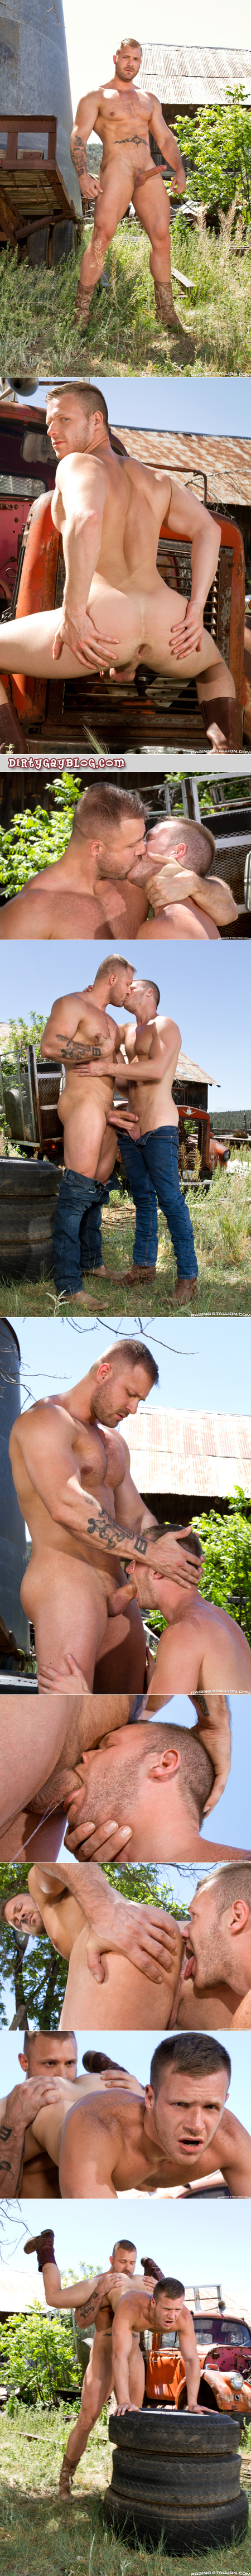 Two shirtless cowboys having gay sex outside.